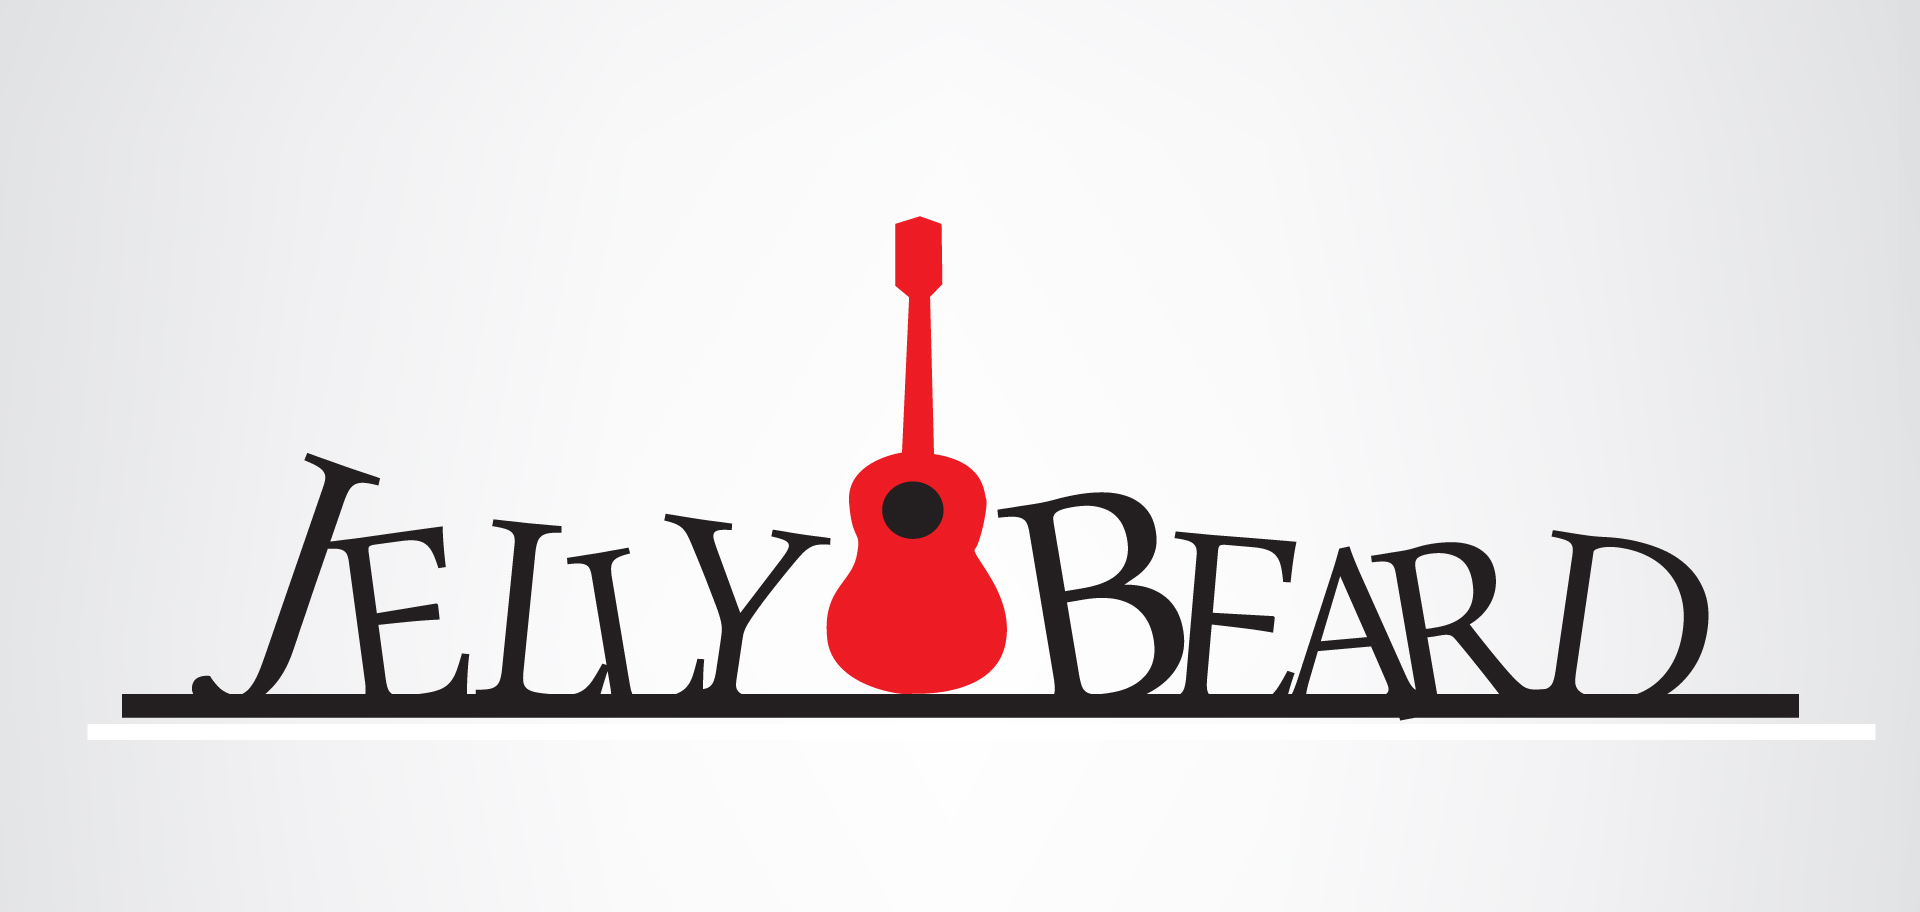 Logo Design by V Anil Yadavv - Entry No. 70 in the Logo Design Contest jellybeard Logo Design.